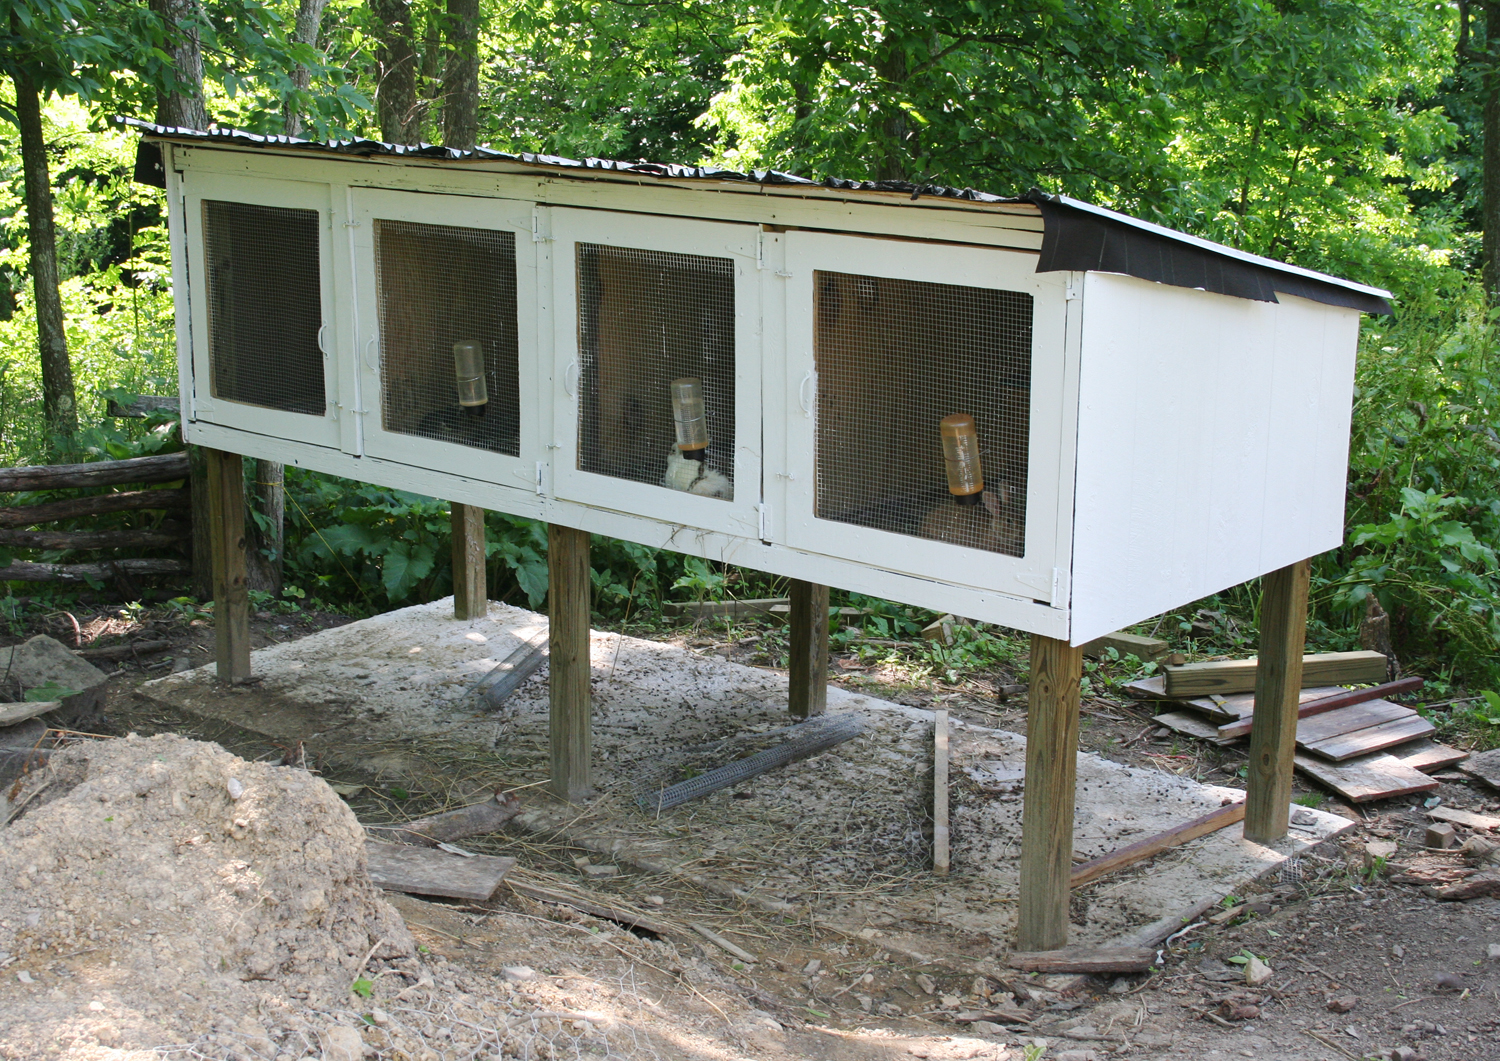 rabbit hutches frontl run hutch new pisces and rome